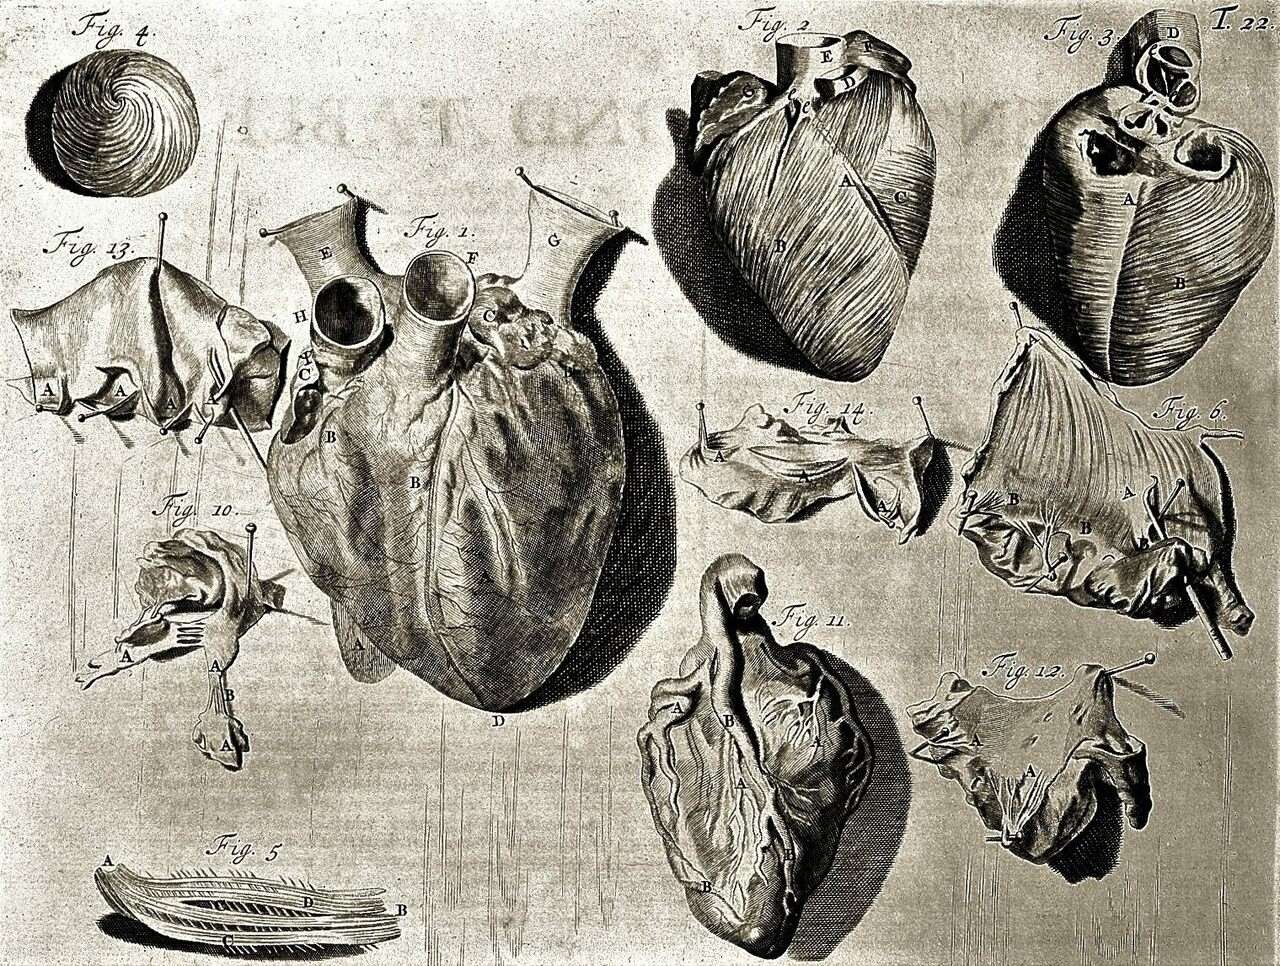 This 18th-century illustration shows a heart in various stages of dissection.